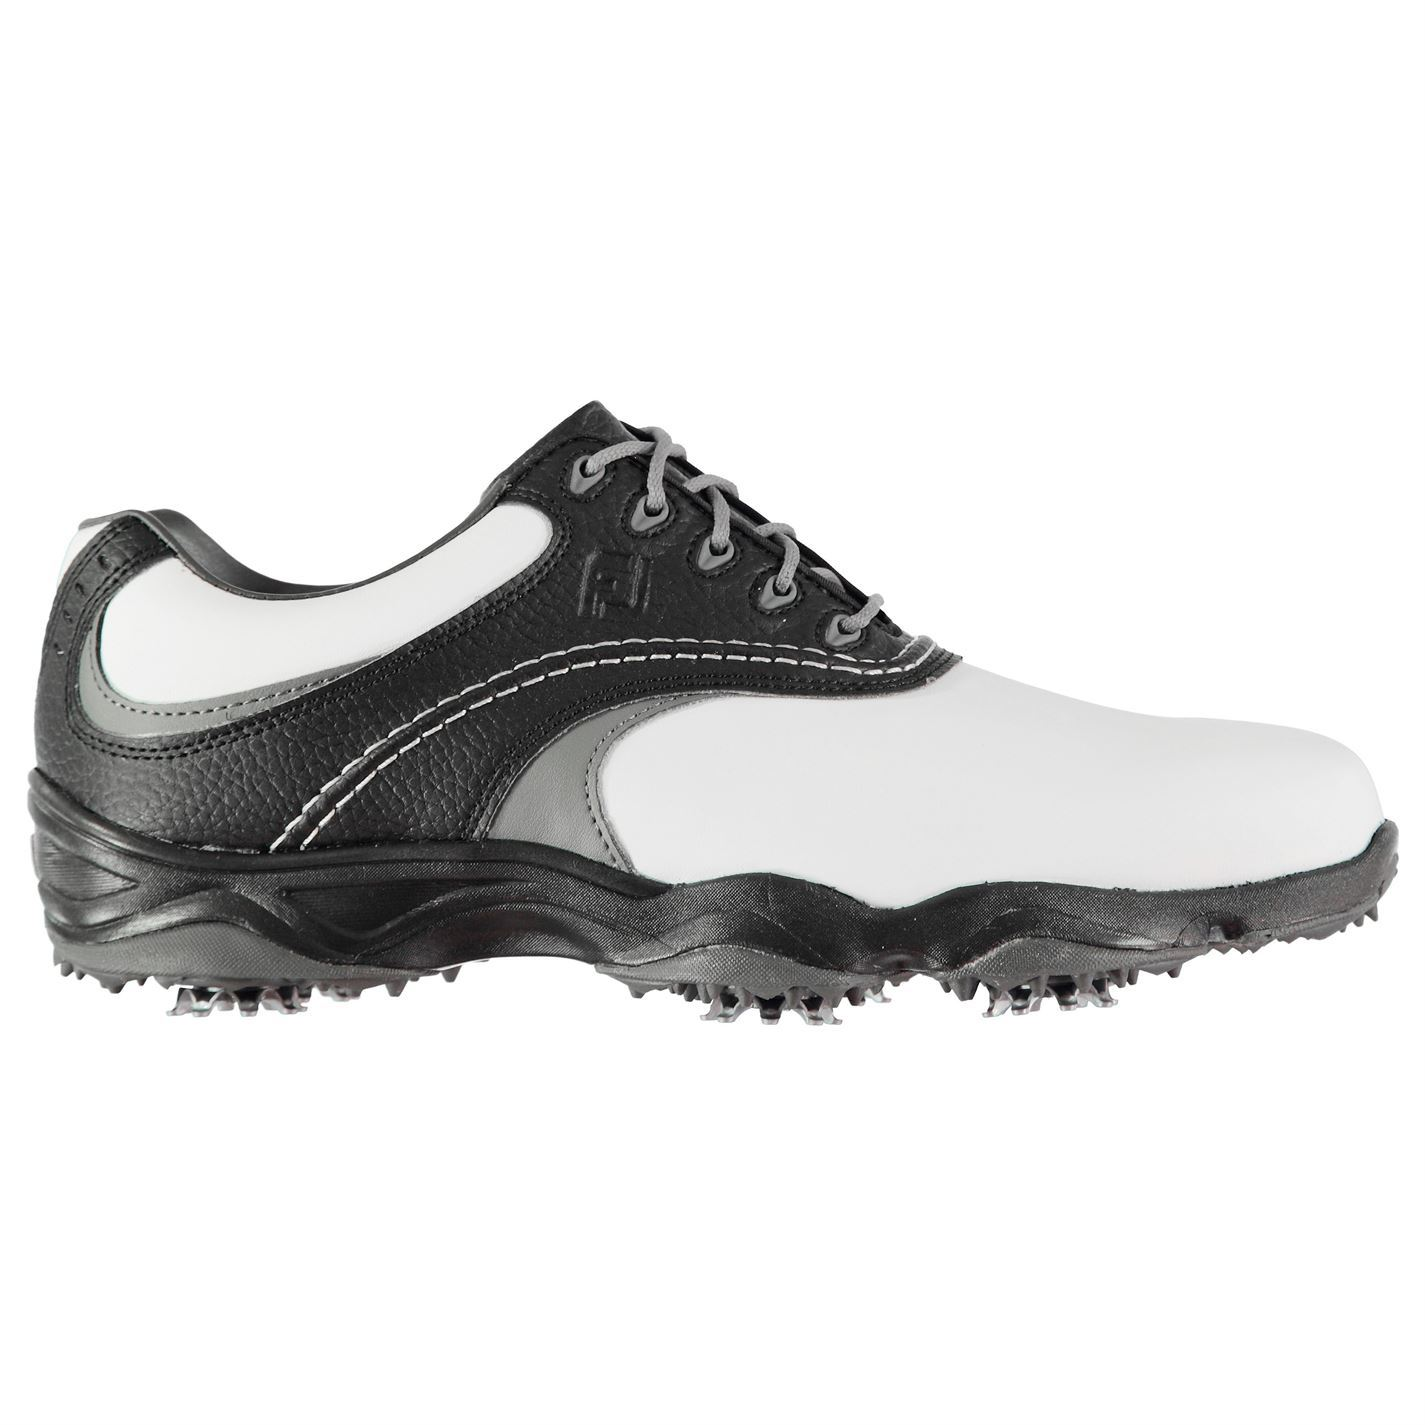 Footjoy-Originals-Golf-Shoes-Mens-Spikes-Footwear thumbnail 16